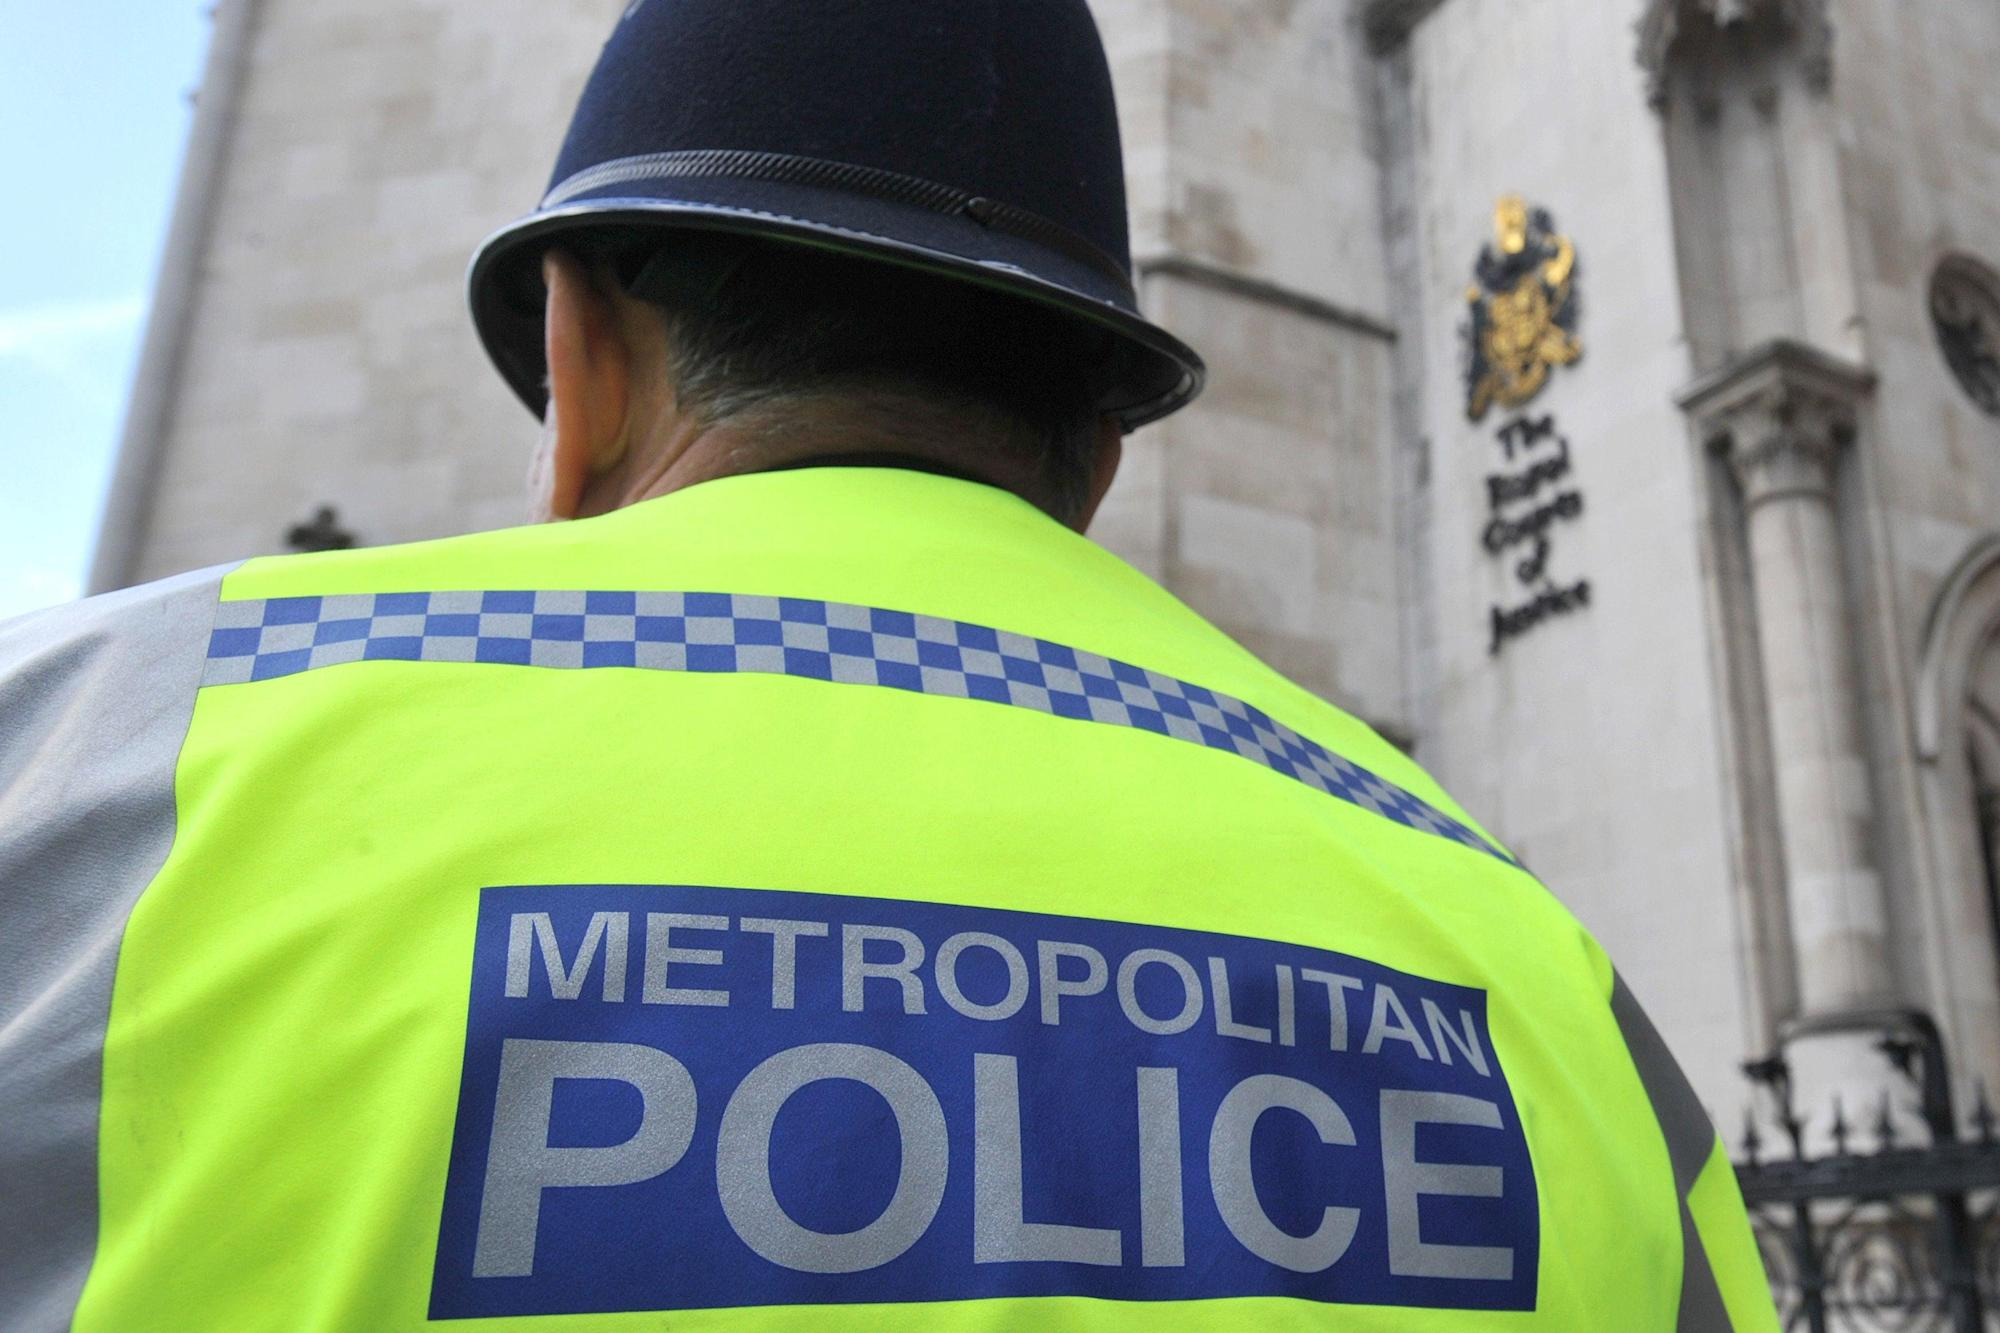 Met police officer sacked after speeding more than 50mph over limit